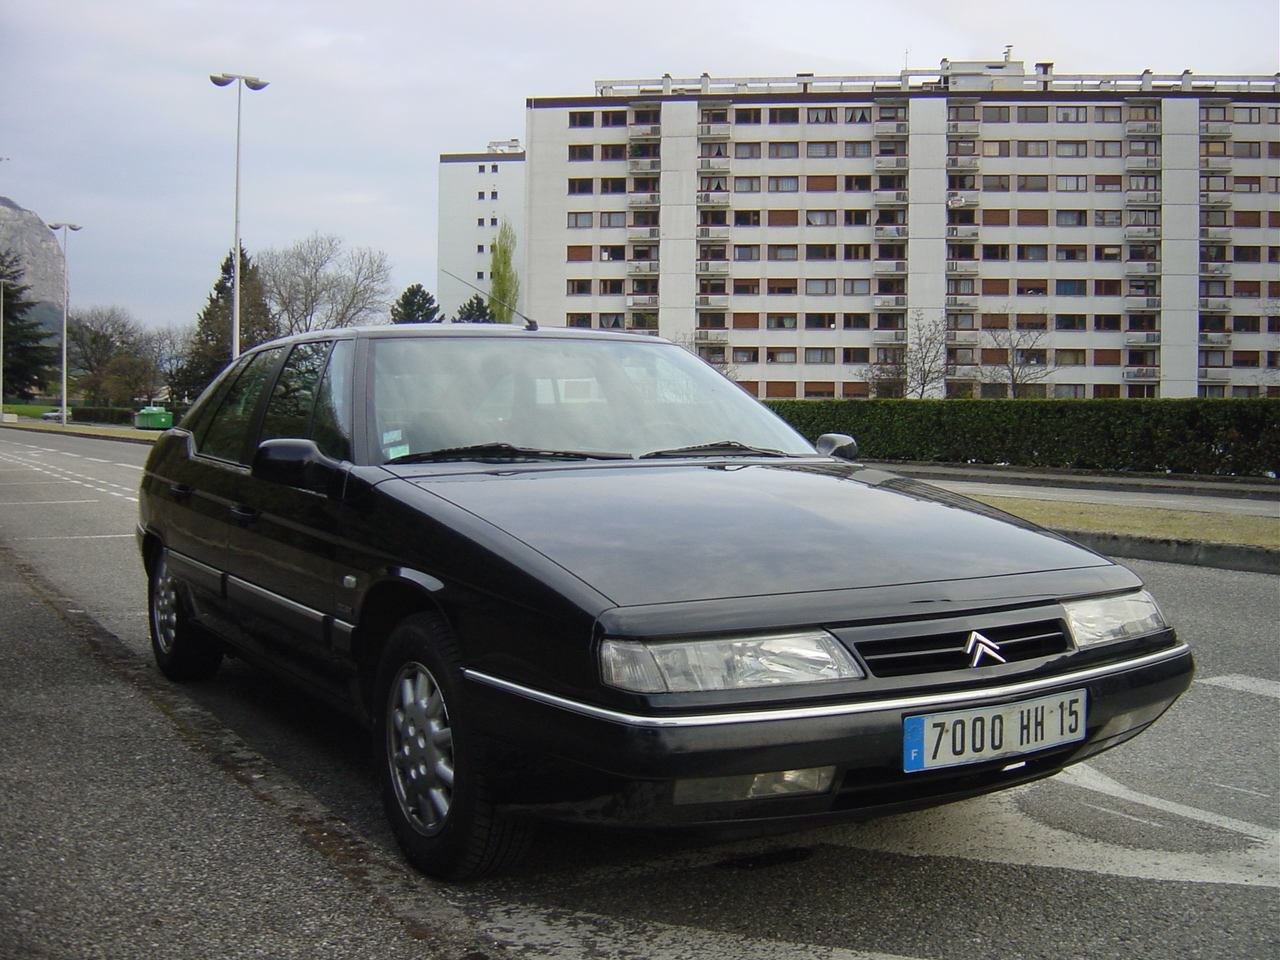 1999 citroen xm photos informations articles. Black Bedroom Furniture Sets. Home Design Ideas